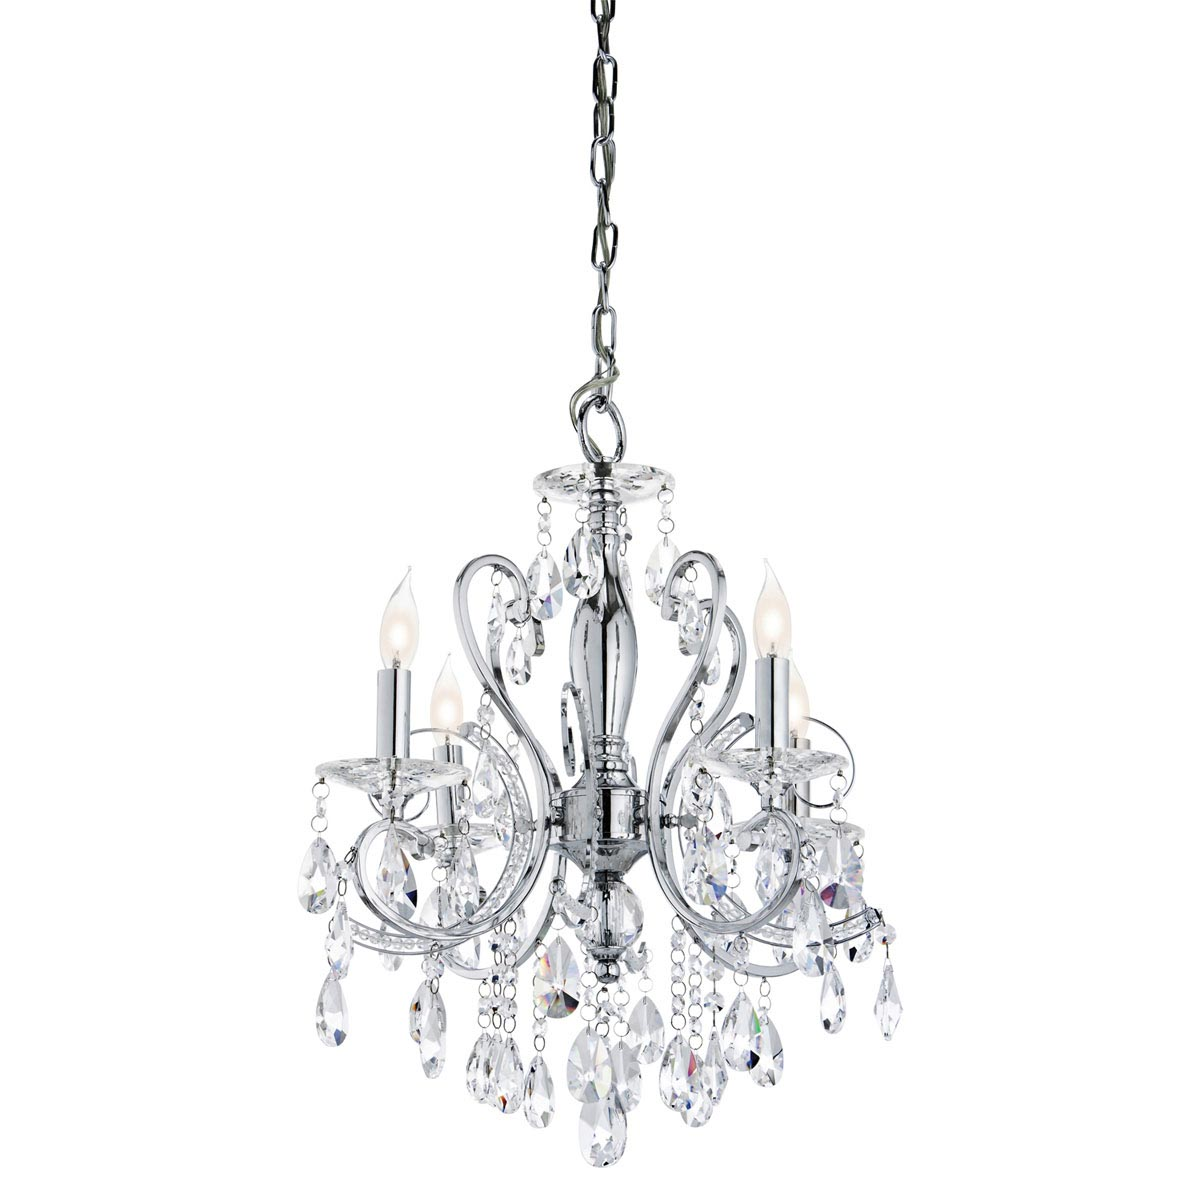 Mini crystal chandeliers for bathroom light fixtures - Small crystal chandelier for bathroom ...